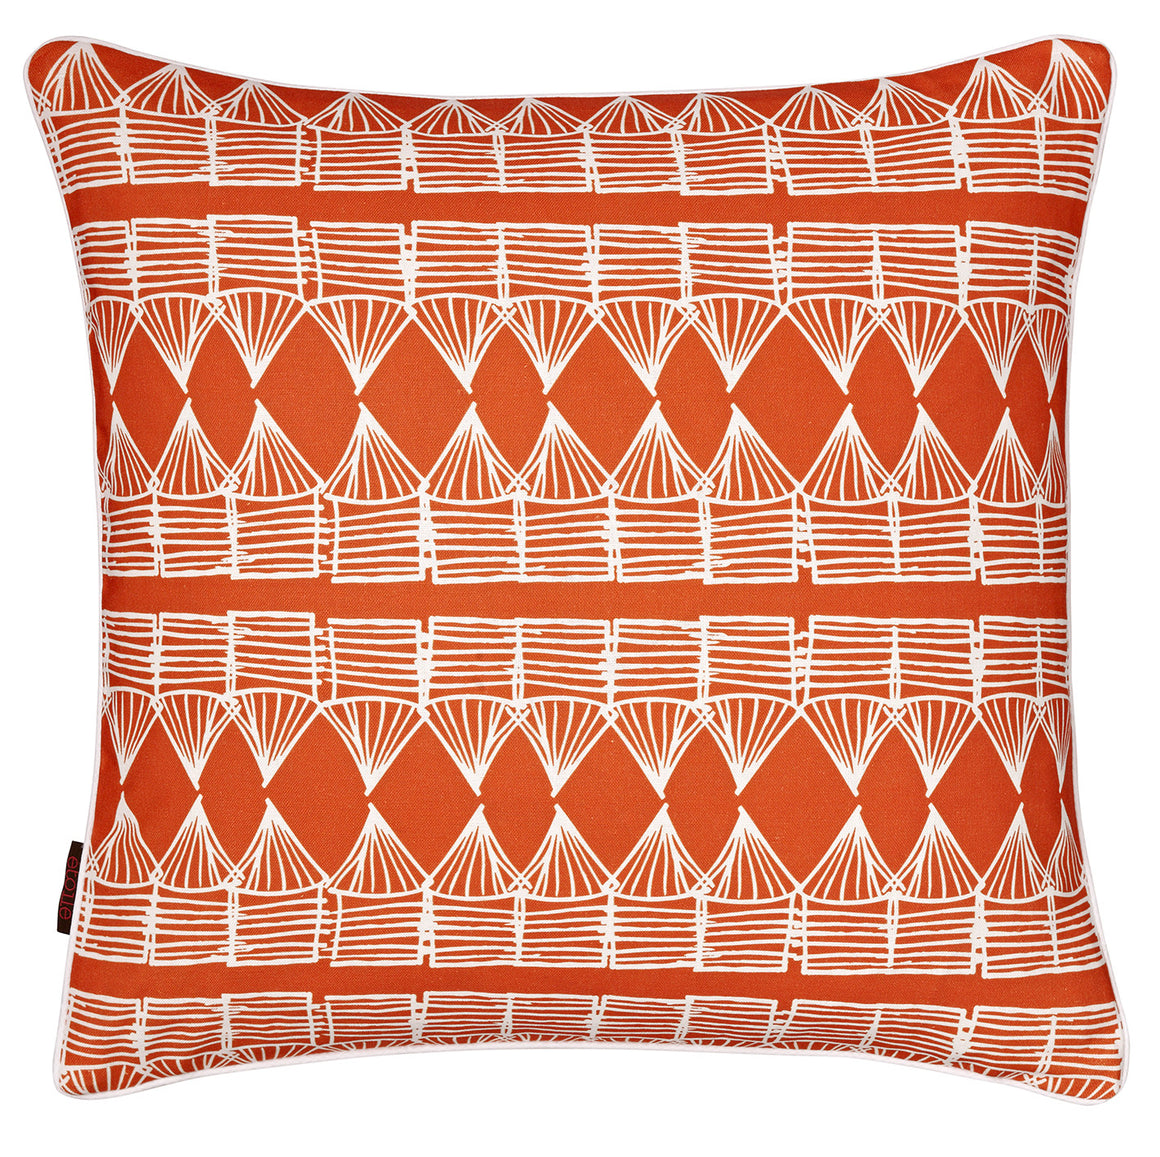 Tiki Huts Pattern Cotton Linen Cushion 45x45cm in Bright Pumpkin Orange